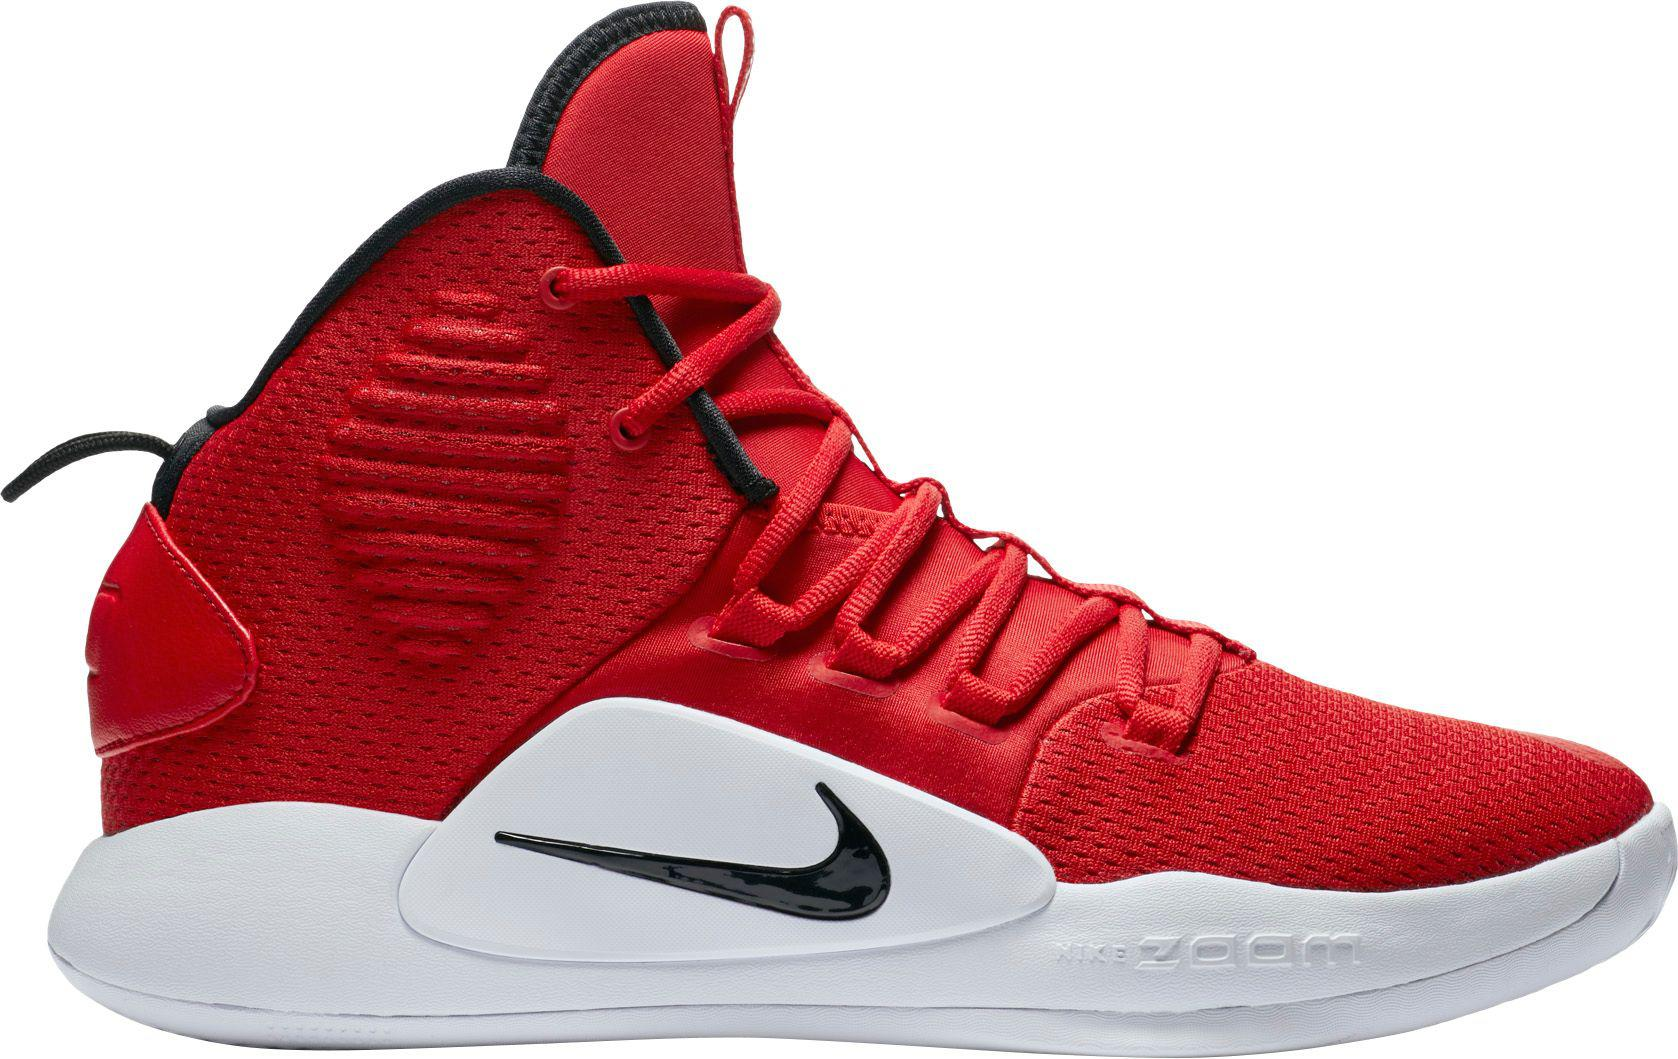 new arrival 45d19 2a61e Nike - Red Hyperdunk X Mid Tb Basketball Shoes for Men - Lyst